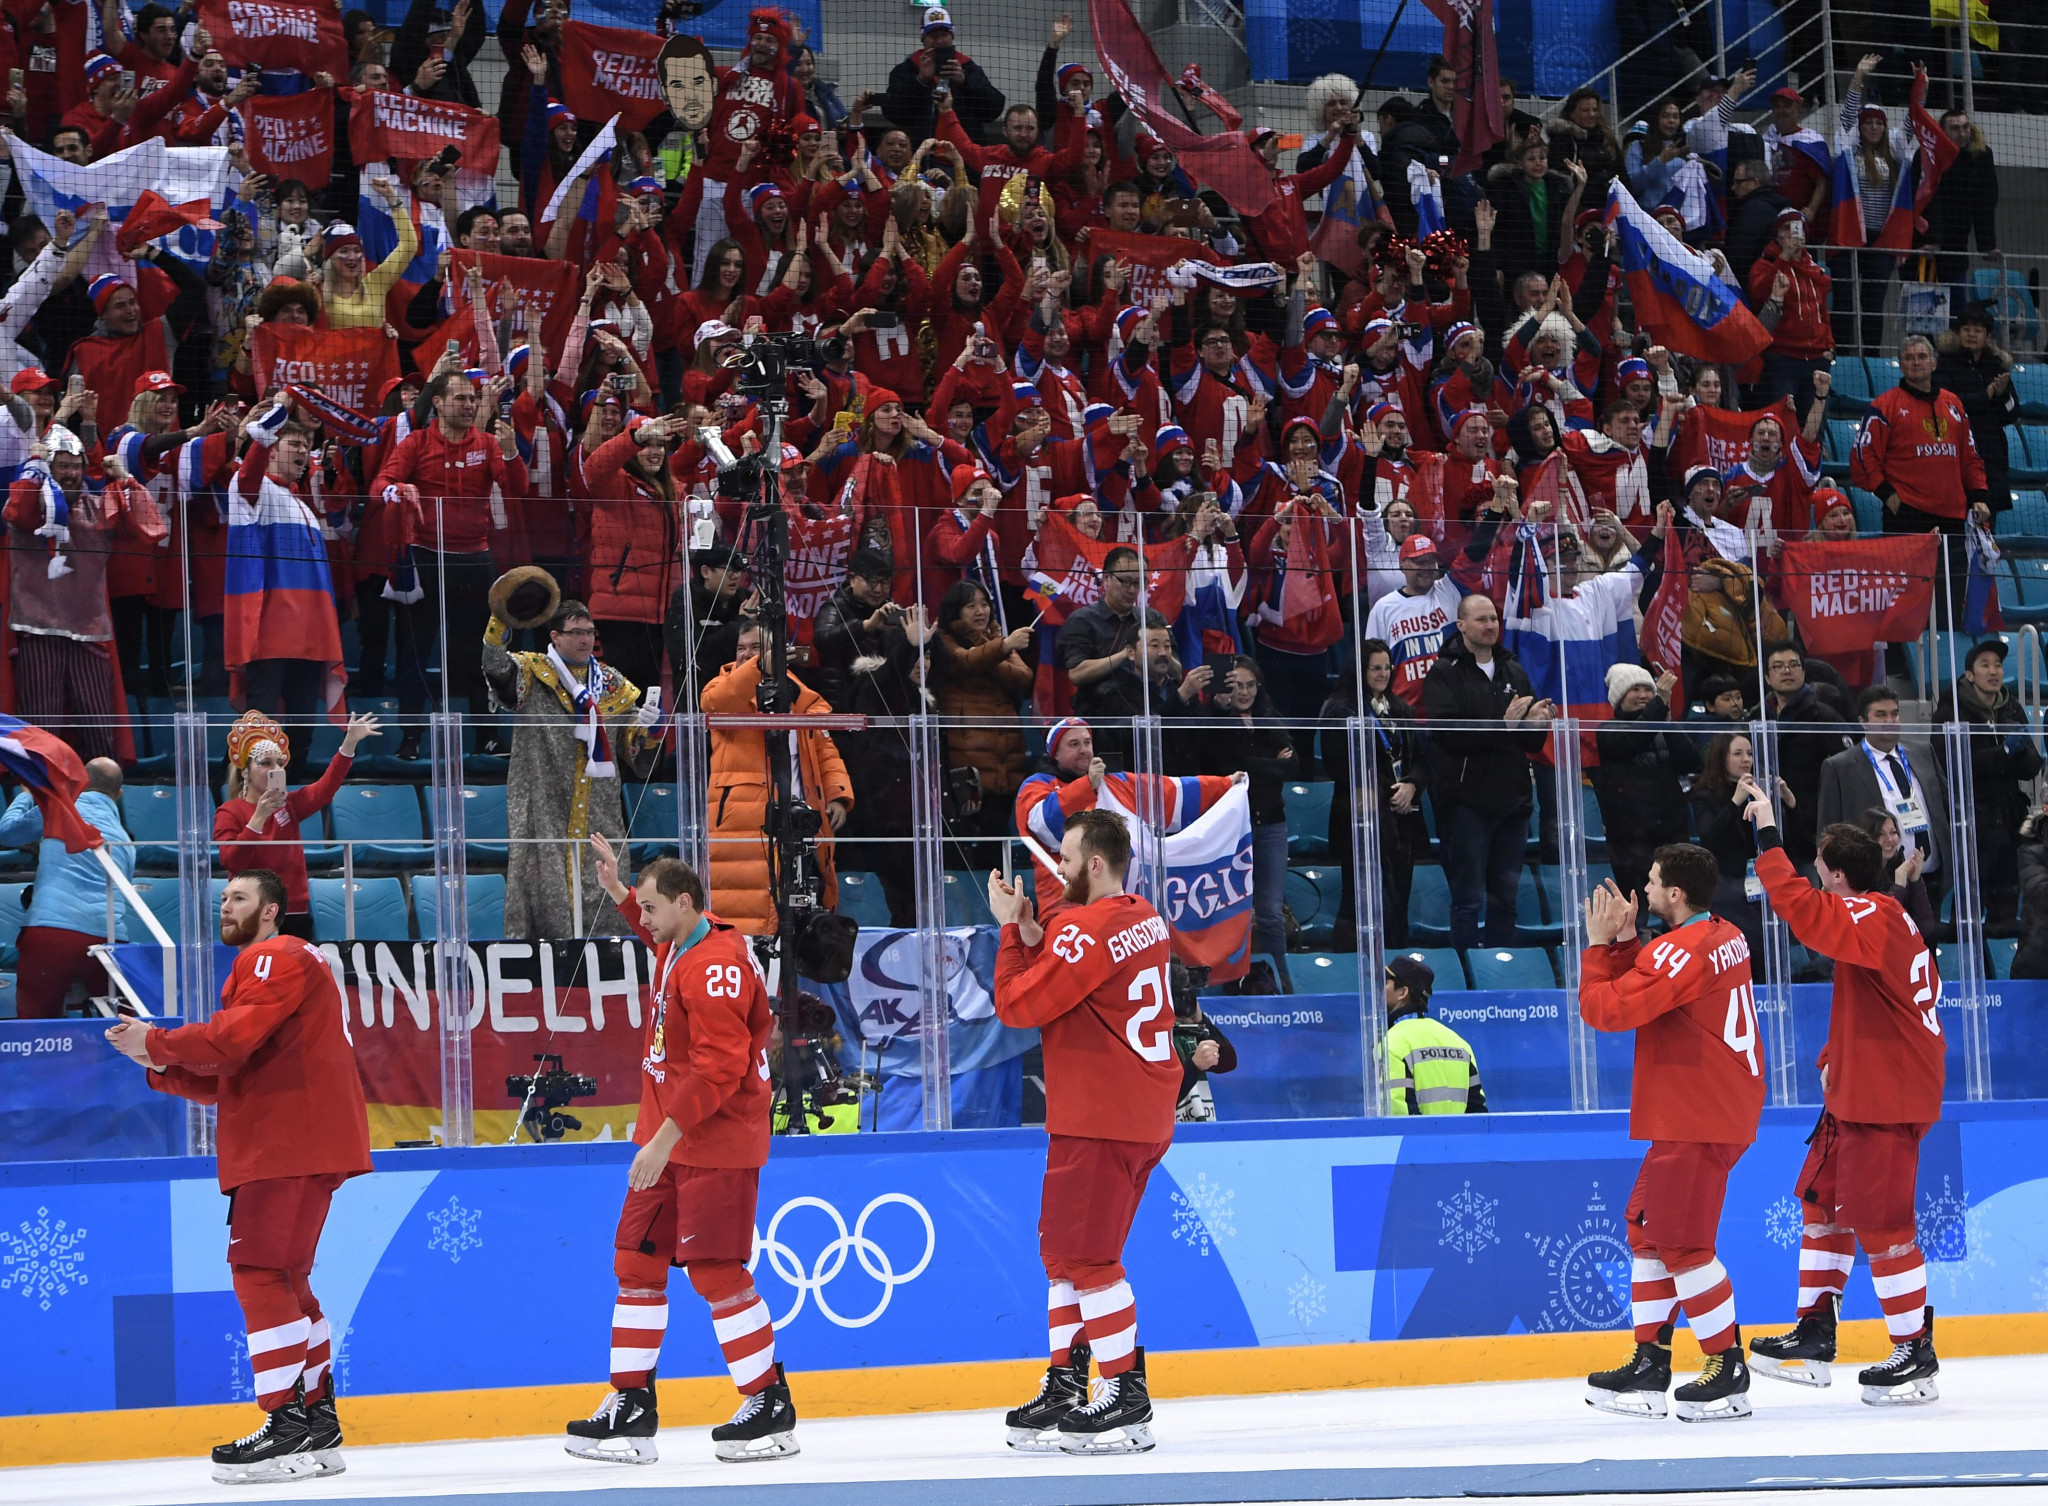 Fans were allowed to display Russian flags at last month's Olympic Games